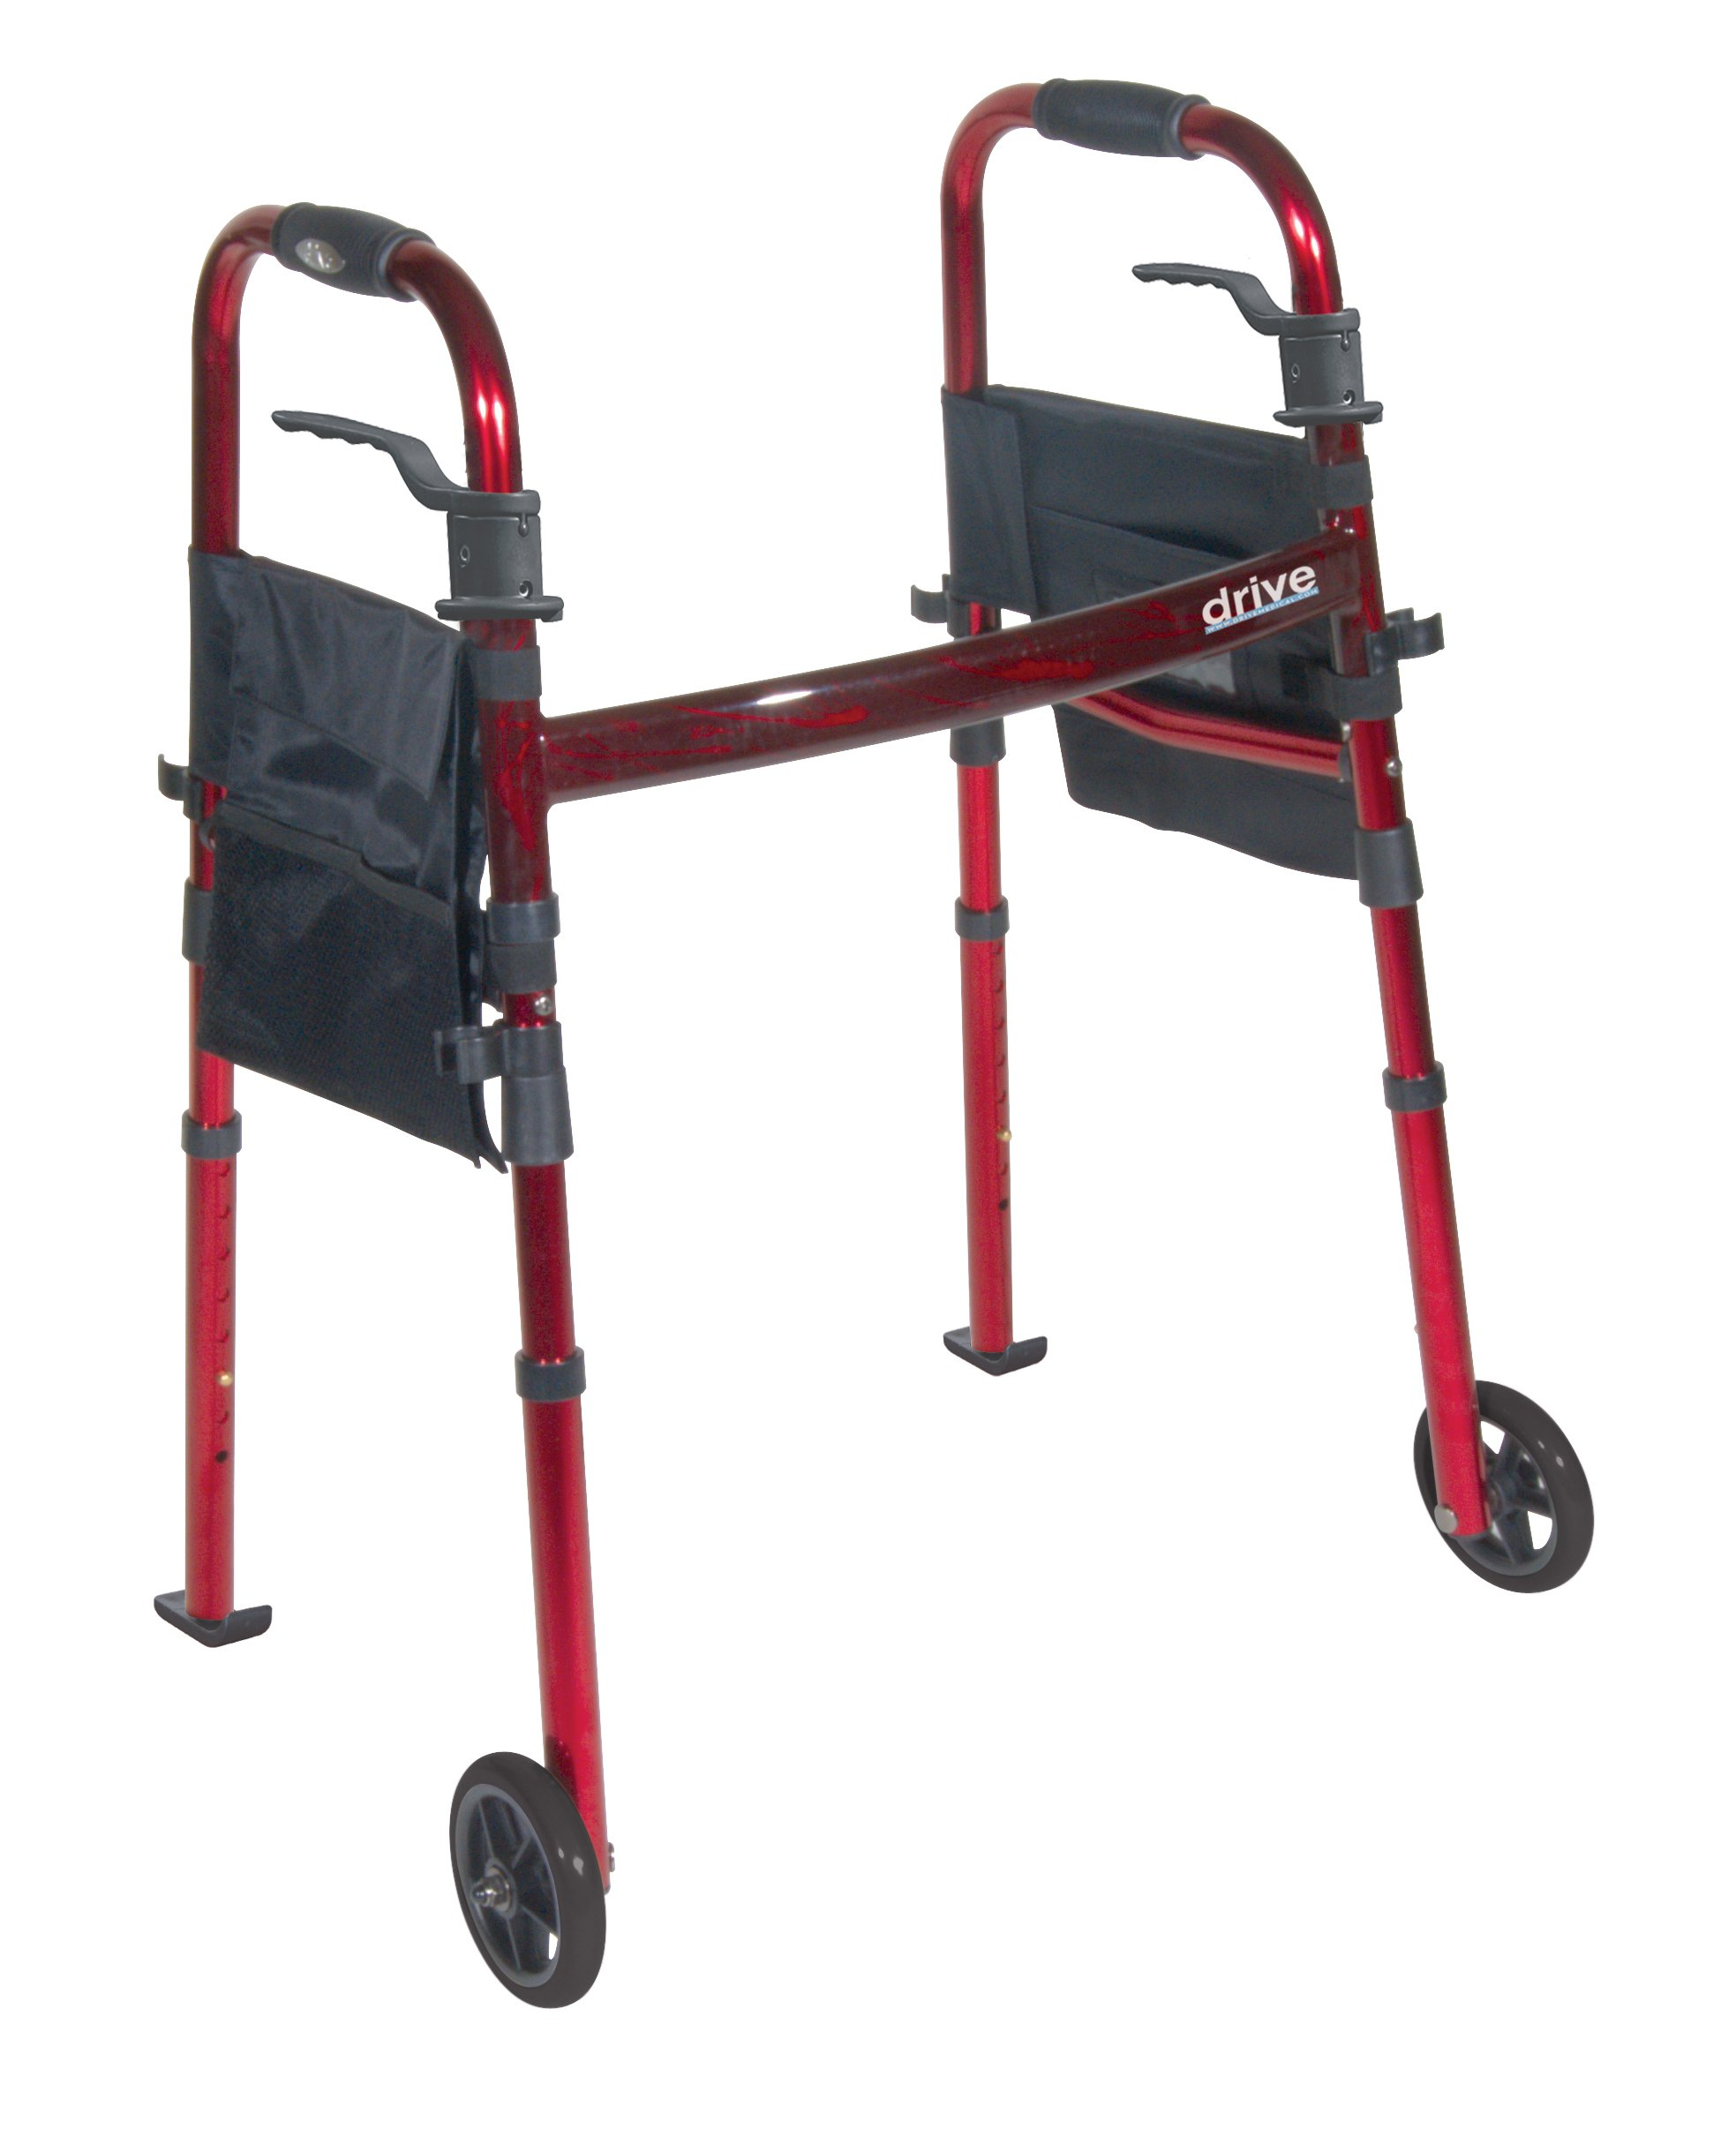 Drive Medical Deluxe Portable Folding Travel Walker with 5'' Wheels and Fold up Legs, Red by Drive Medical